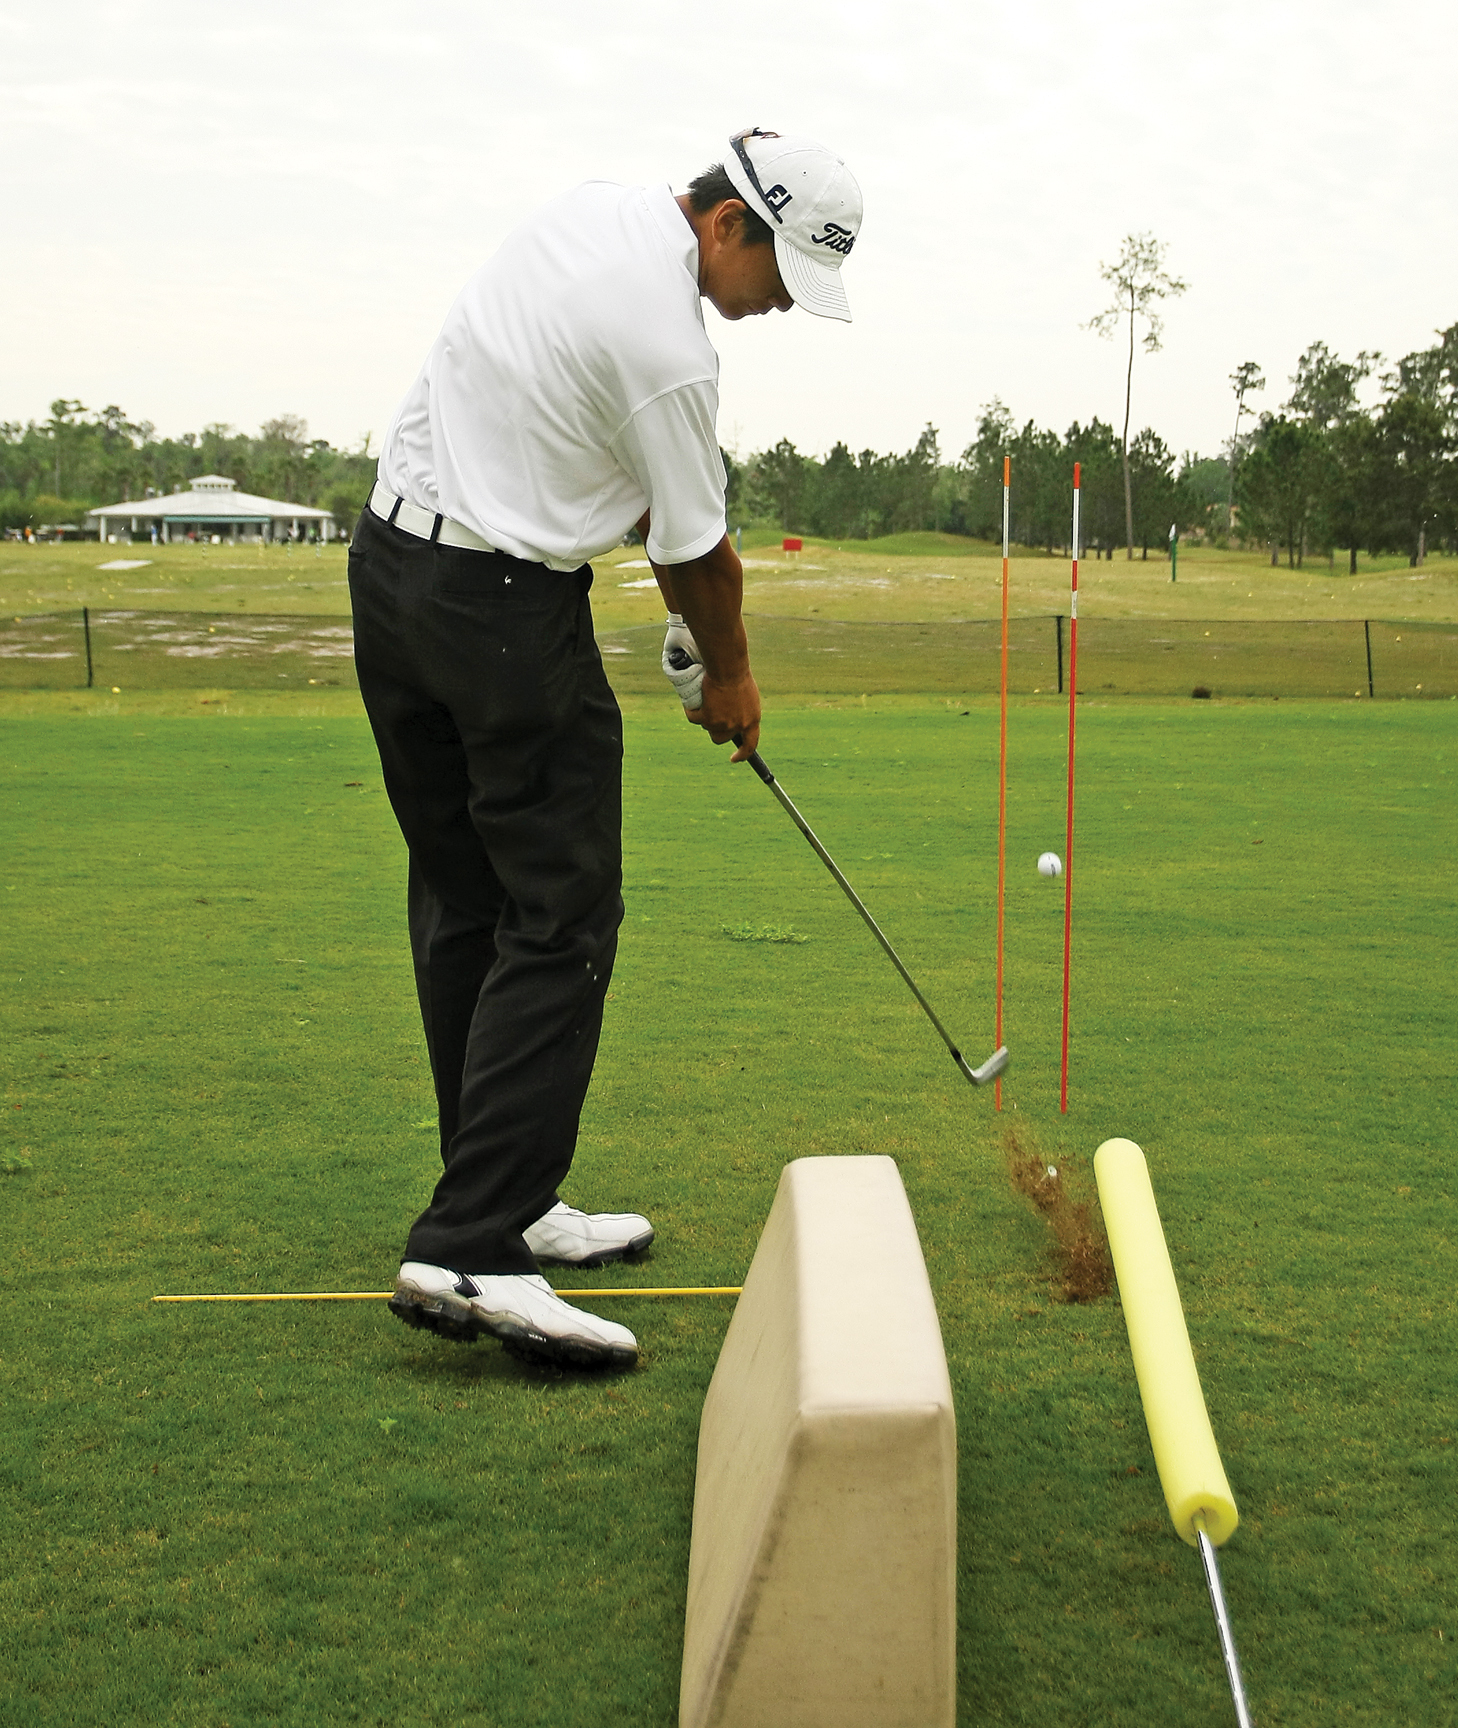 Hak uses a cushion, a padded rod and alignment sticks to work on his aim and swing plane.